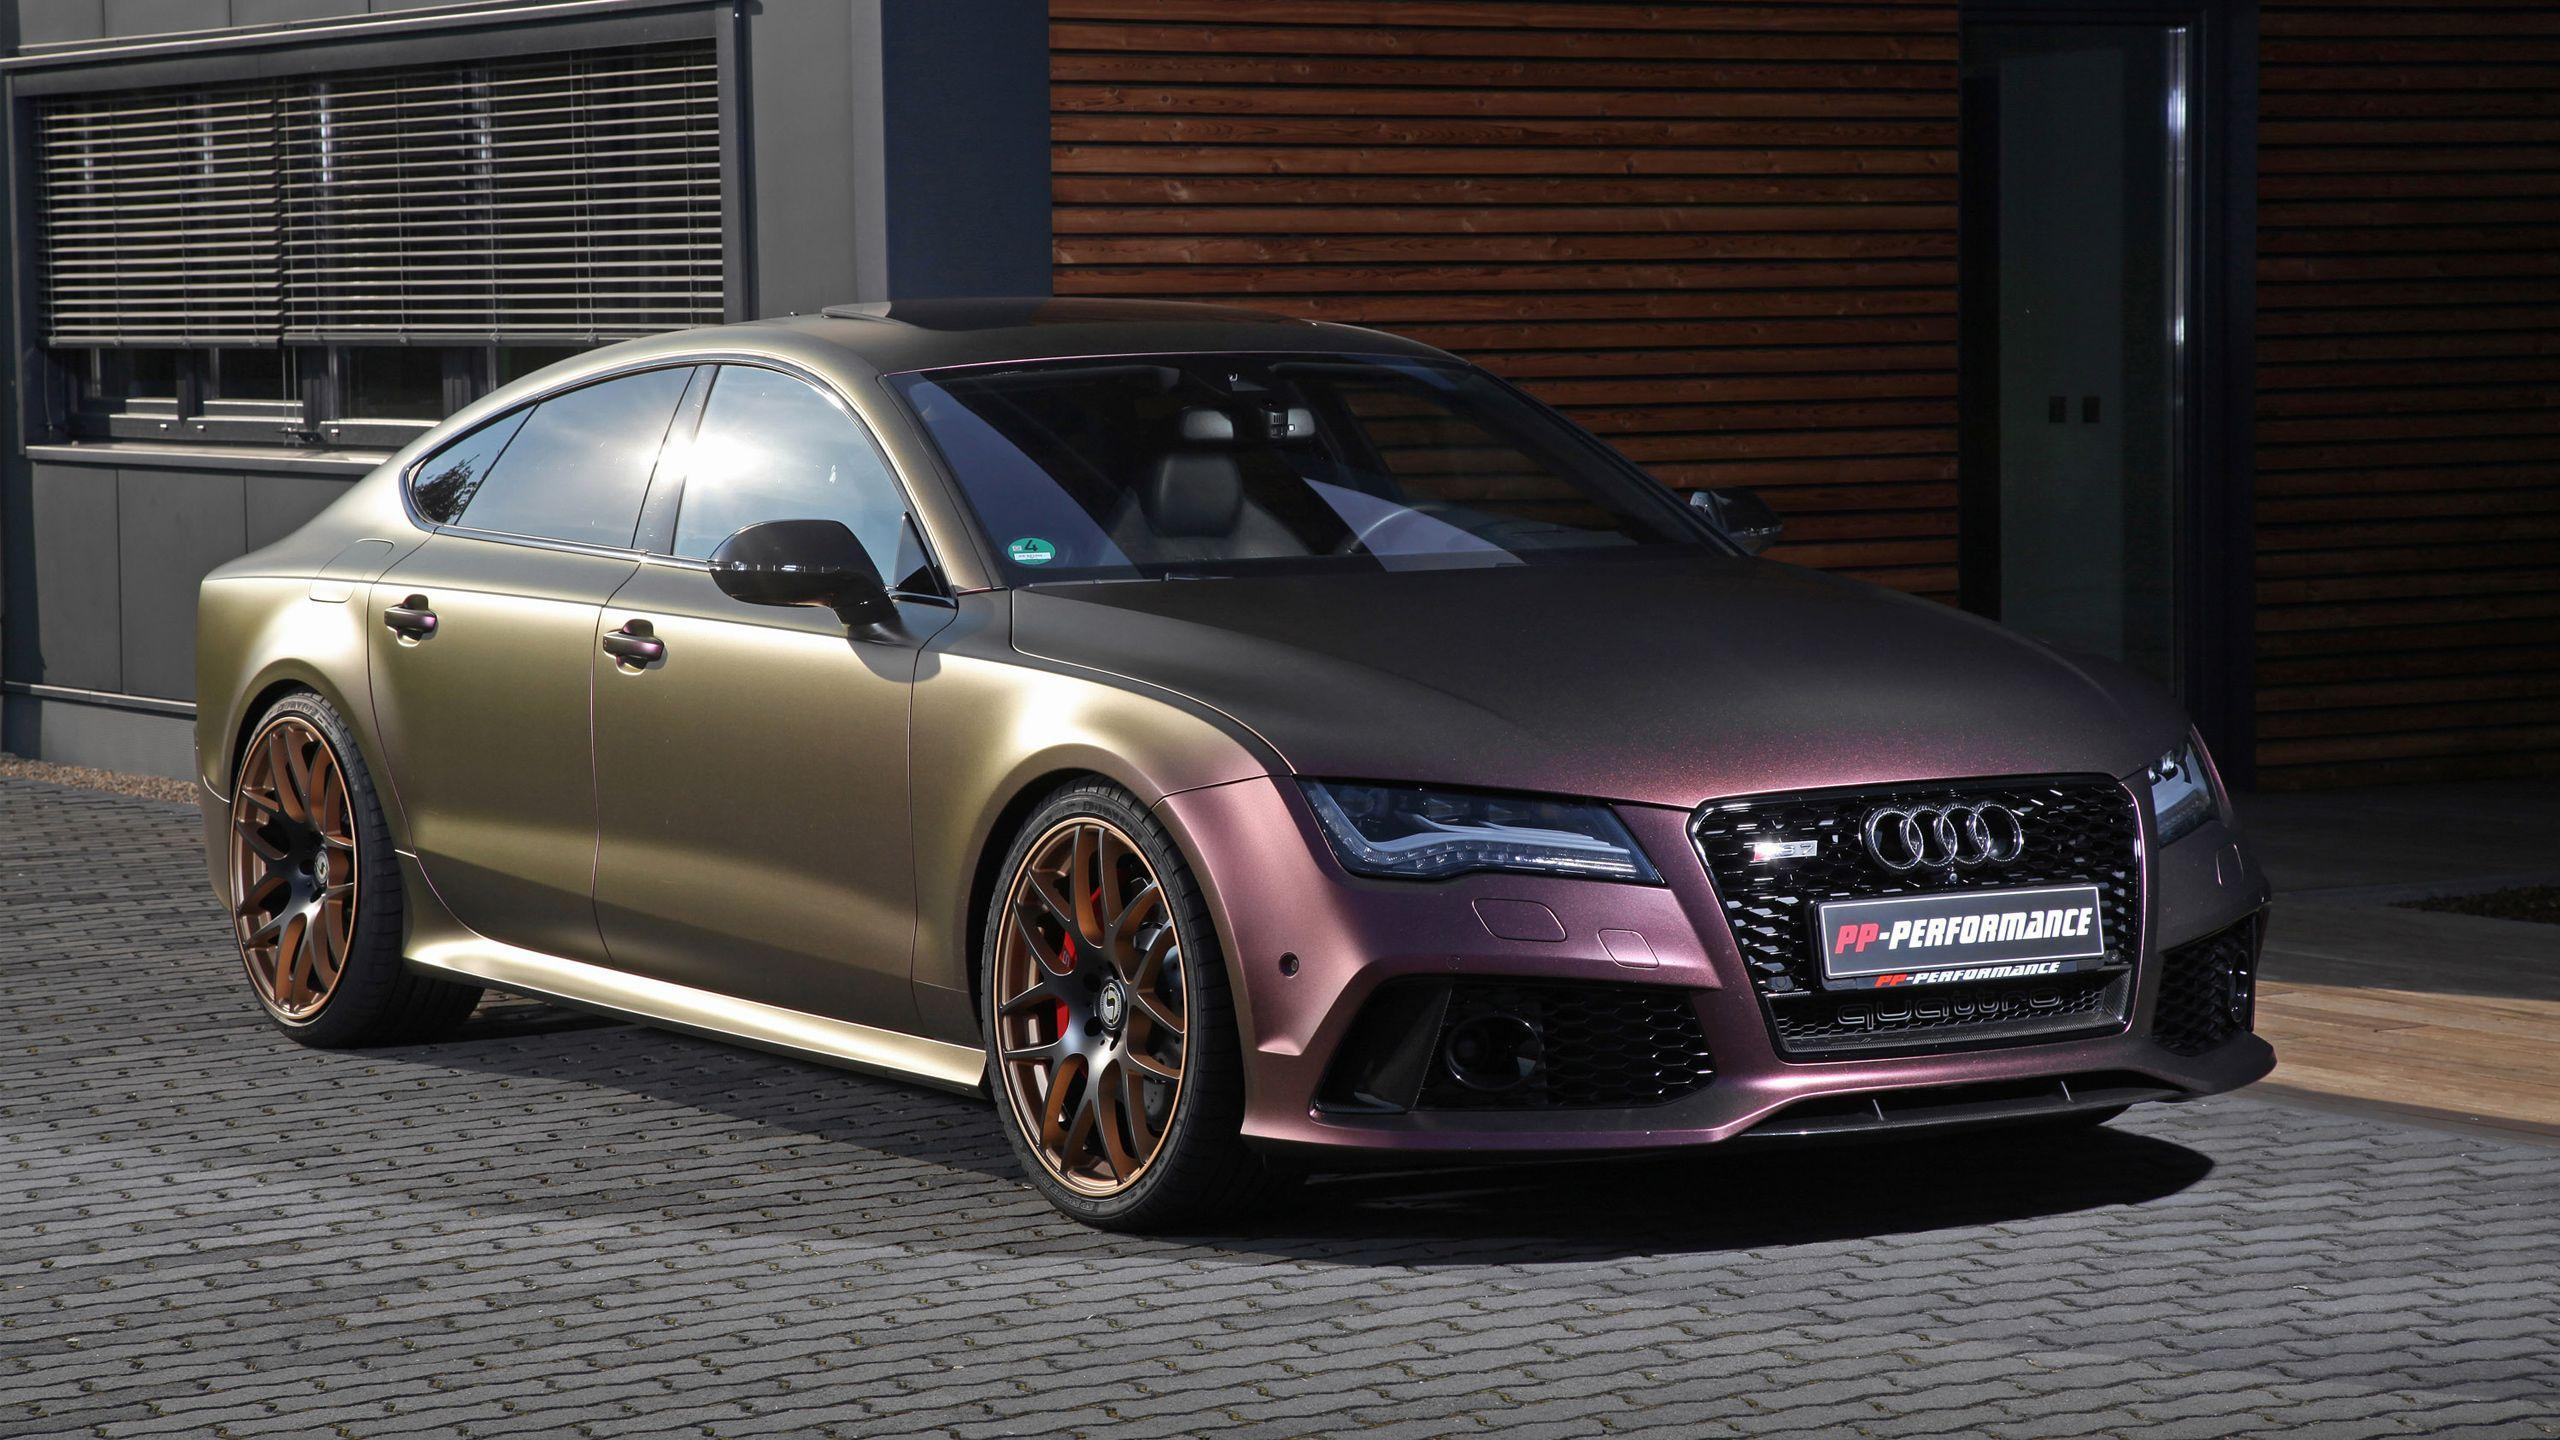 2016 PP Performance Audi RS7 Wallpapers